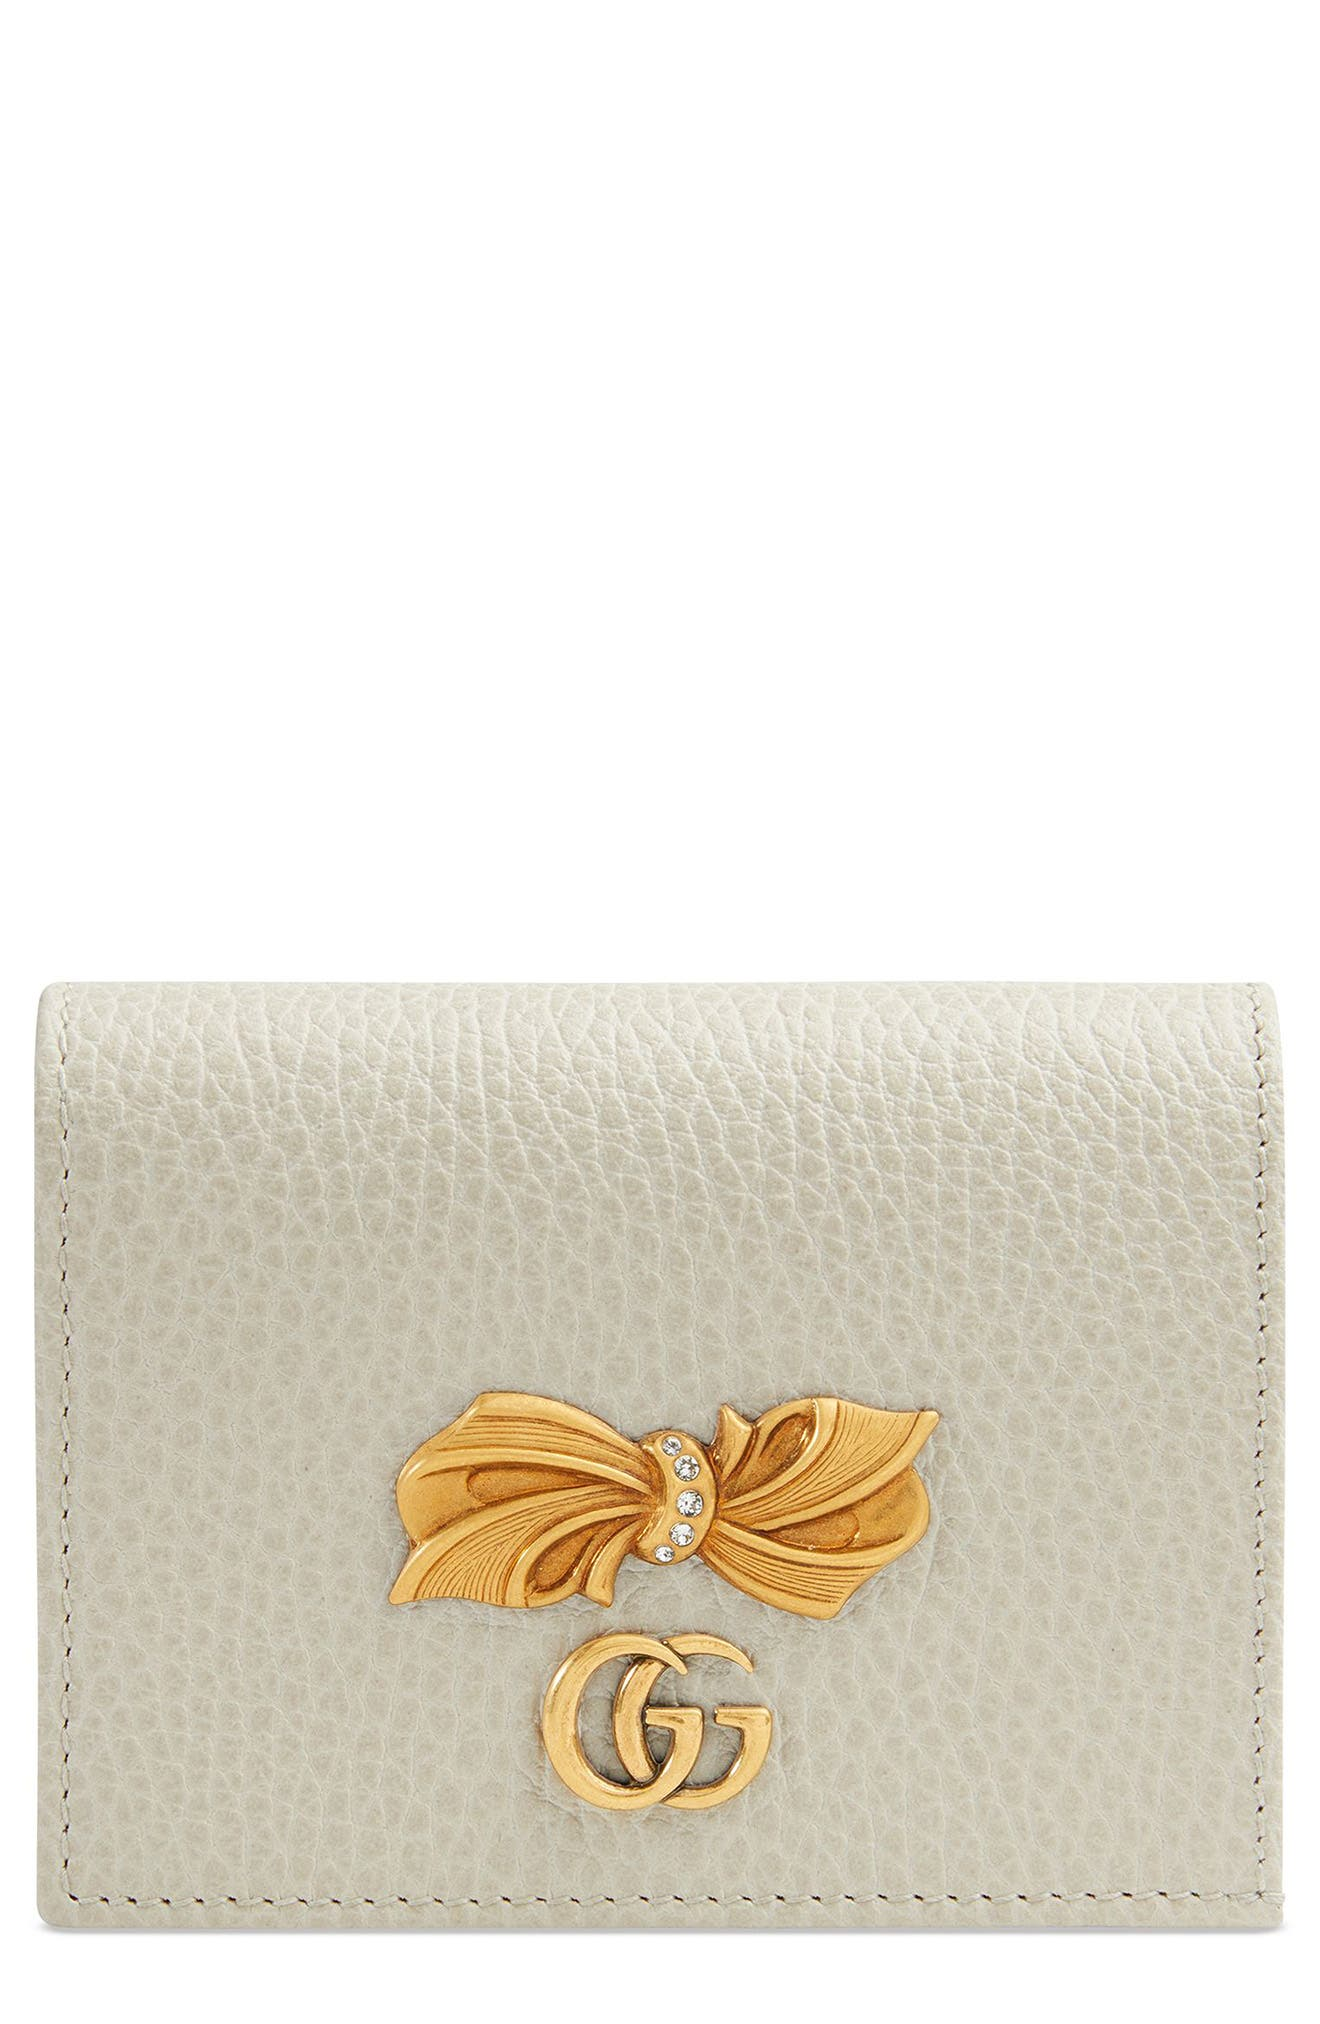 Fiocchino Leather Card Case,                             Main thumbnail 1, color,                             Mystic White/ Pink/ Crystal